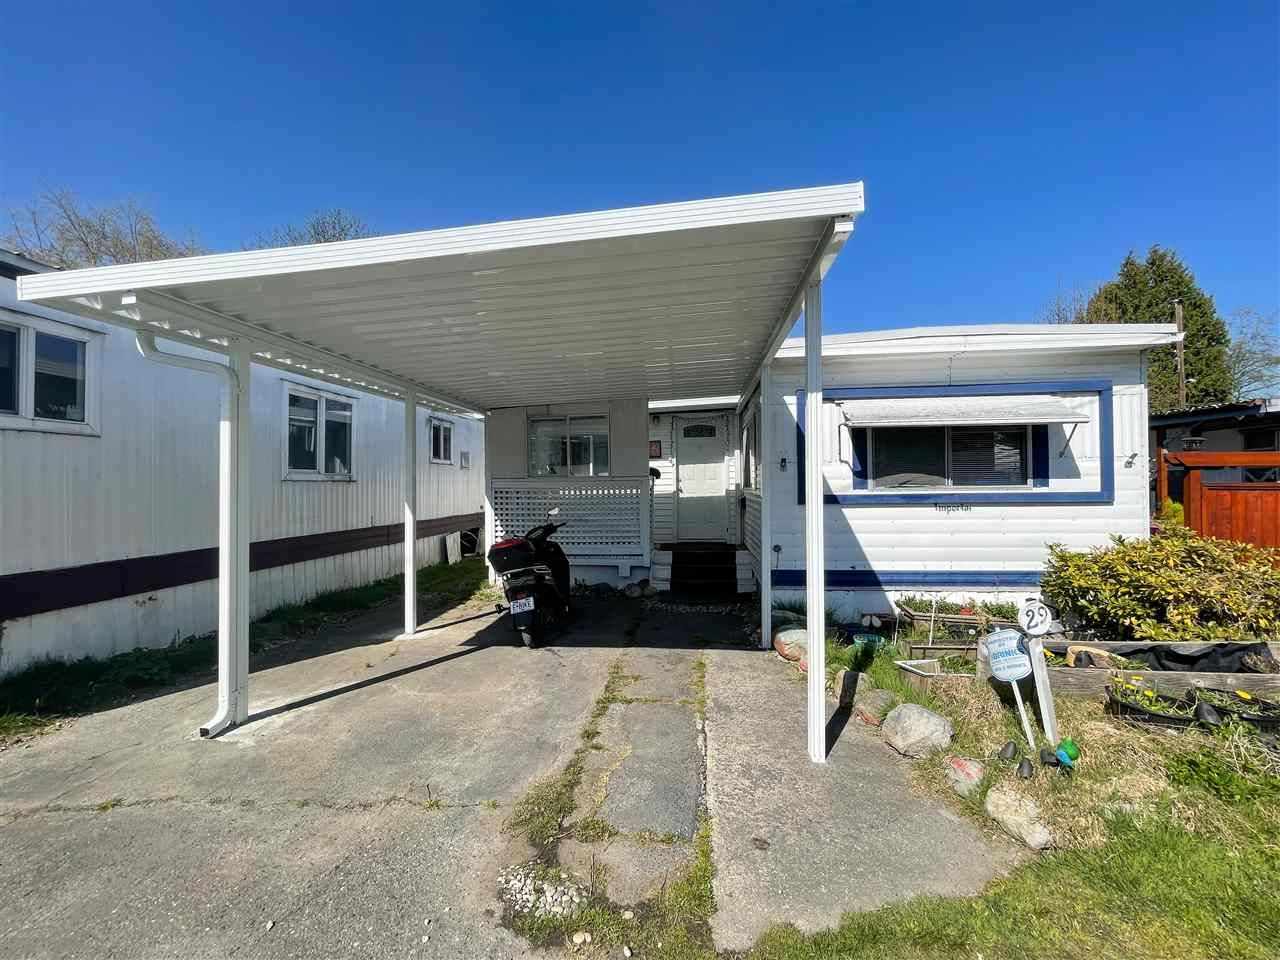 """Main Photo: 29 9132 120 Street in Surrey: Queen Mary Park Surrey Manufactured Home for sale in """"SCOTT PLAZA"""" : MLS®# R2577479"""